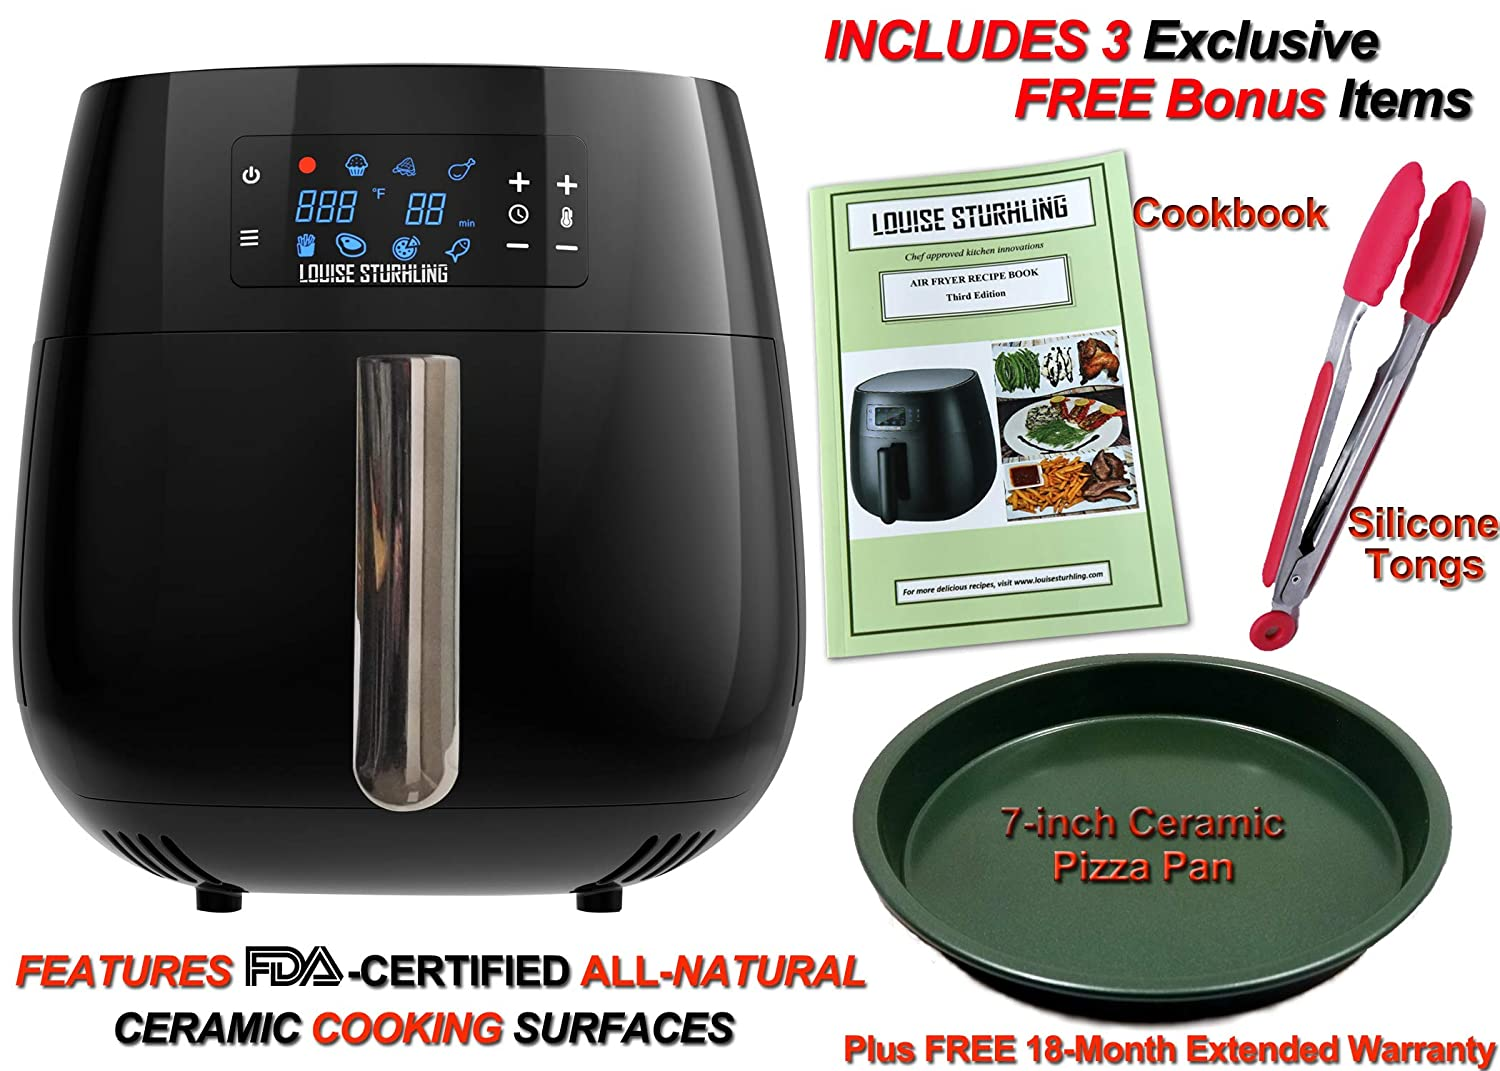 LOUISE STURHLING Chrome Series All-Natural Ceramic Coated 4.0 L Air Fryer, Free of Pb, Cd, BPA, PFOS PFOA, 7-in-1 programmable one-touch Settings. Includes 3 exclusive BONUS Items – COOKBOOK, TONGS Ceramic PIZZA PAN